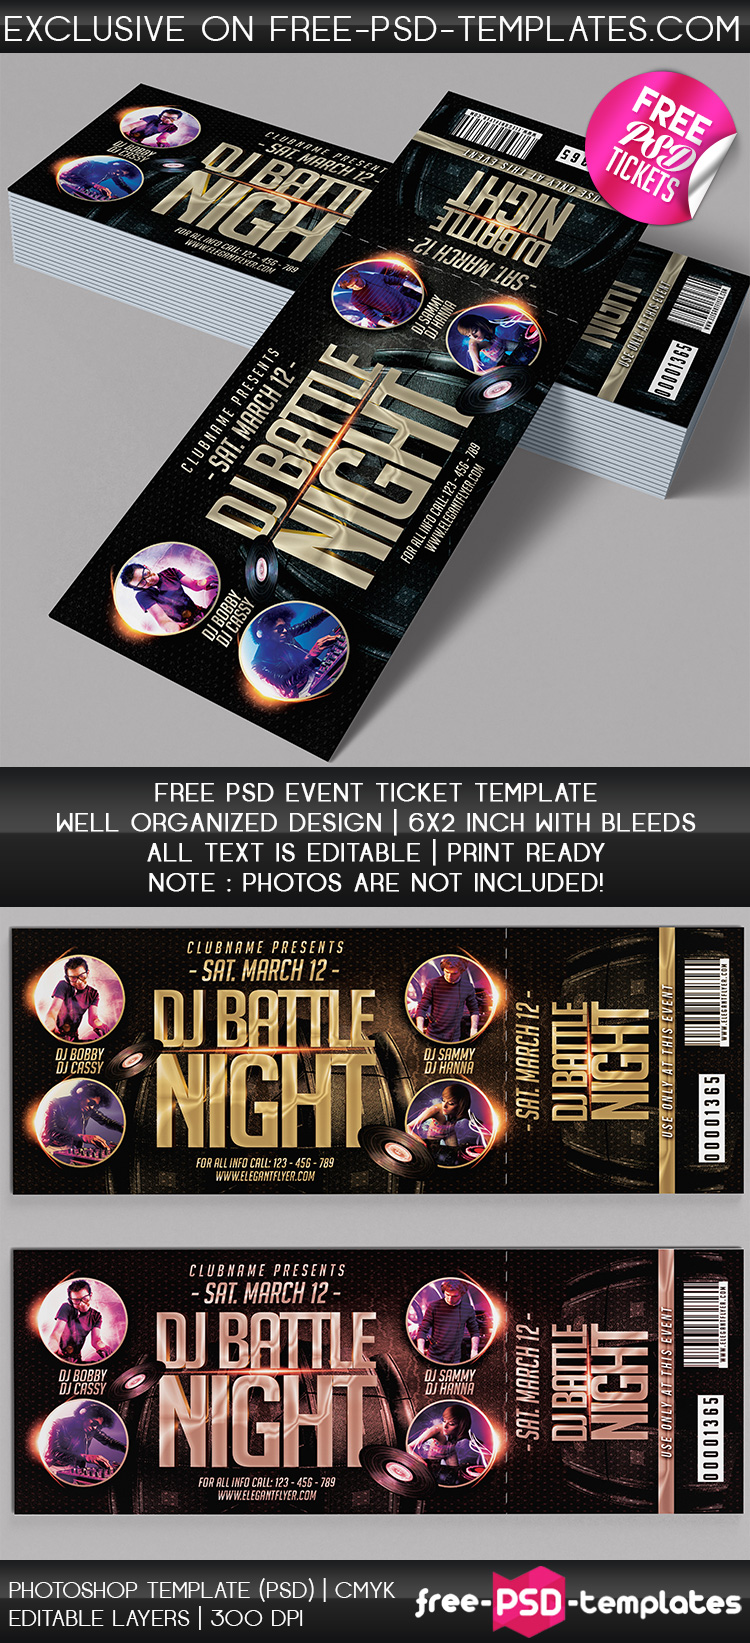 Free PSD Event Tickets Free PSD Templates - Free event ticket template